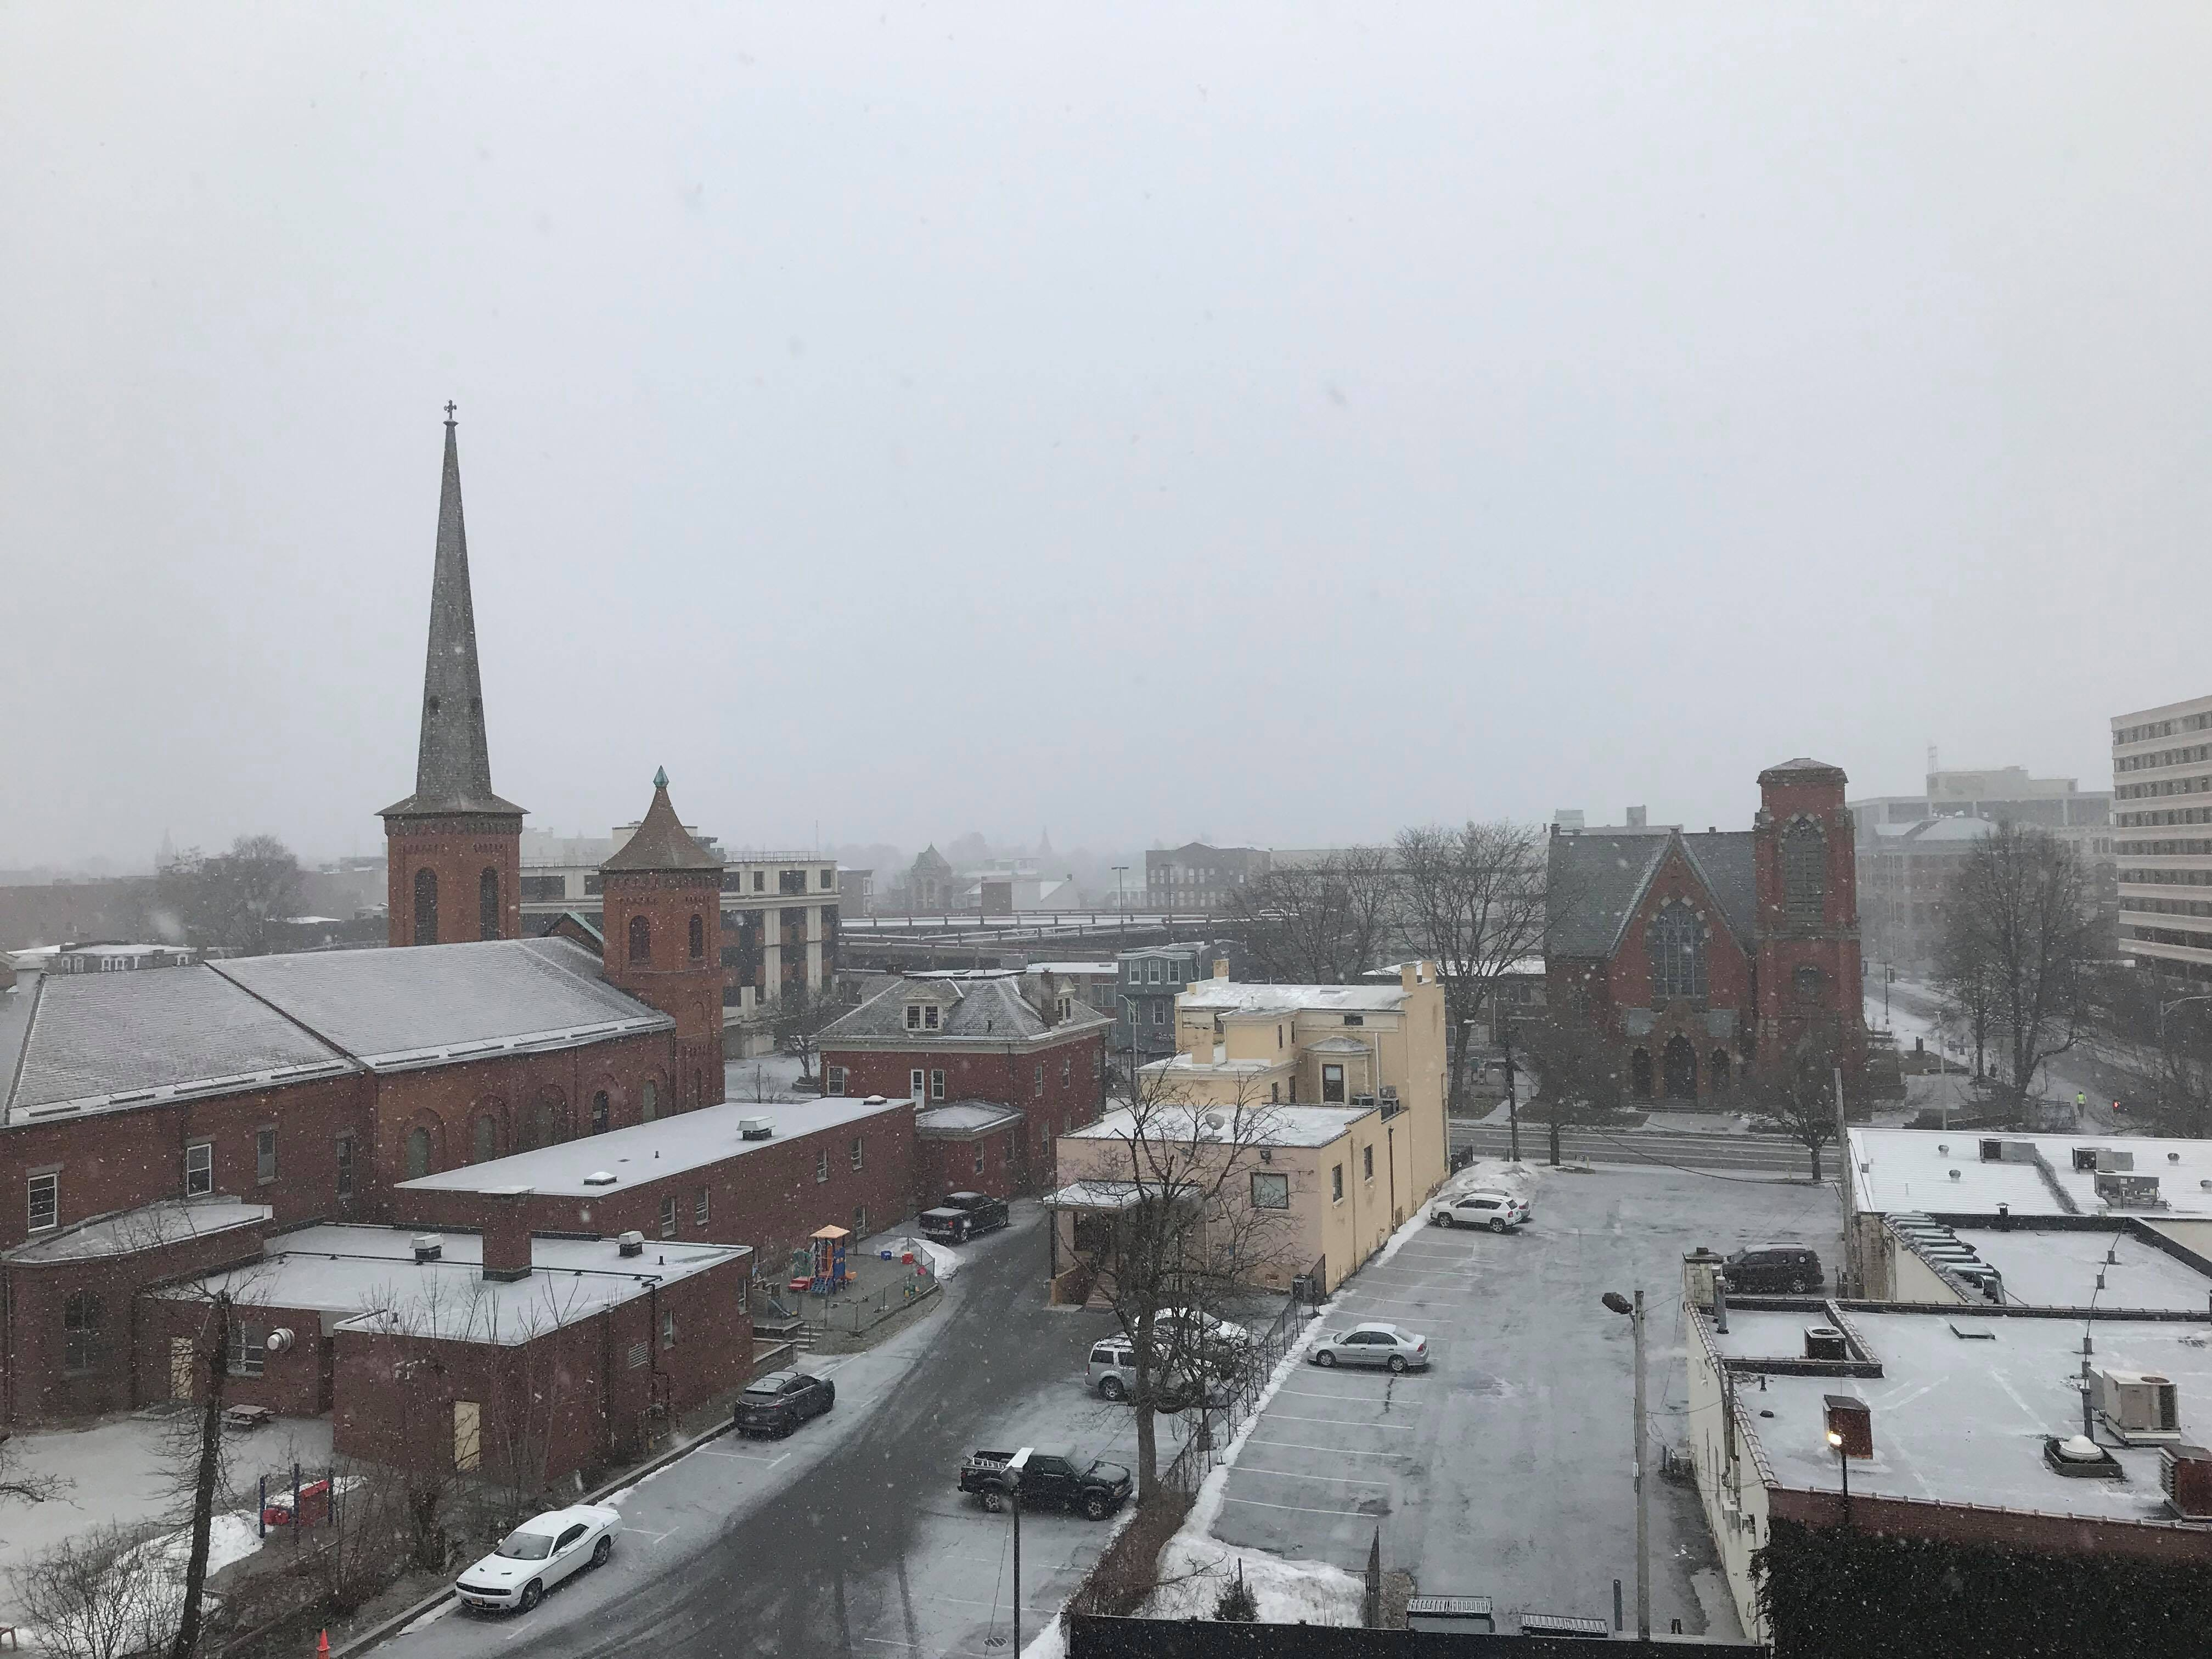 A winter weather warning is in effect until 6 a.m. Wednesday. Snow is falling in the City of Poughkeepsie as seen on Tuesday, Feb. 12, 2019. An estimated 6 to 8 inches of snow is forecasted for the mid-Hudson region.